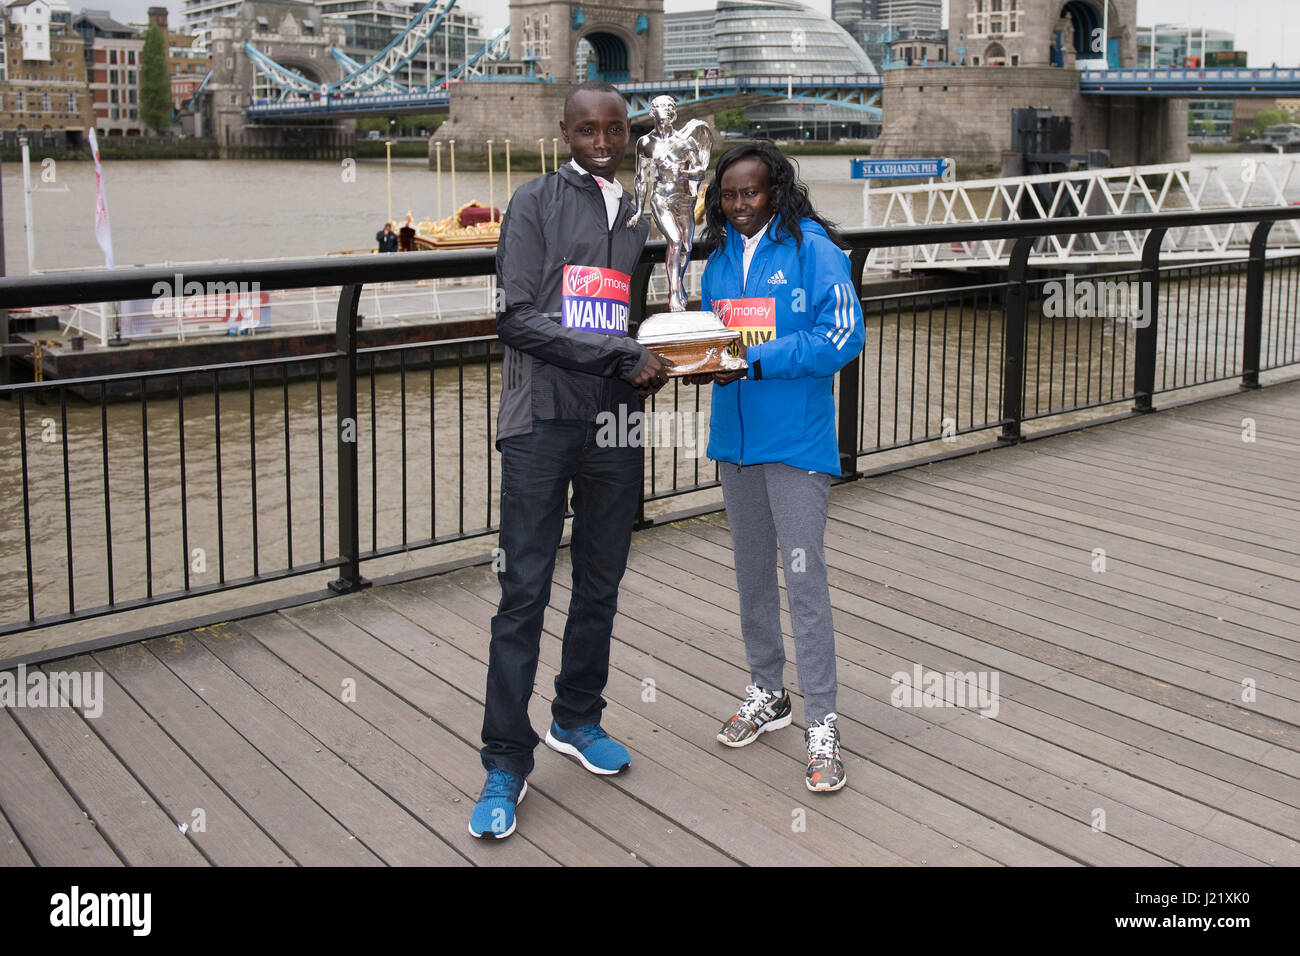 London, UK. 24th April, 2017. Mary Keitany KEN, Daniel Wanjiru KEN pose for photos at a photo call for the winners Stock Photo